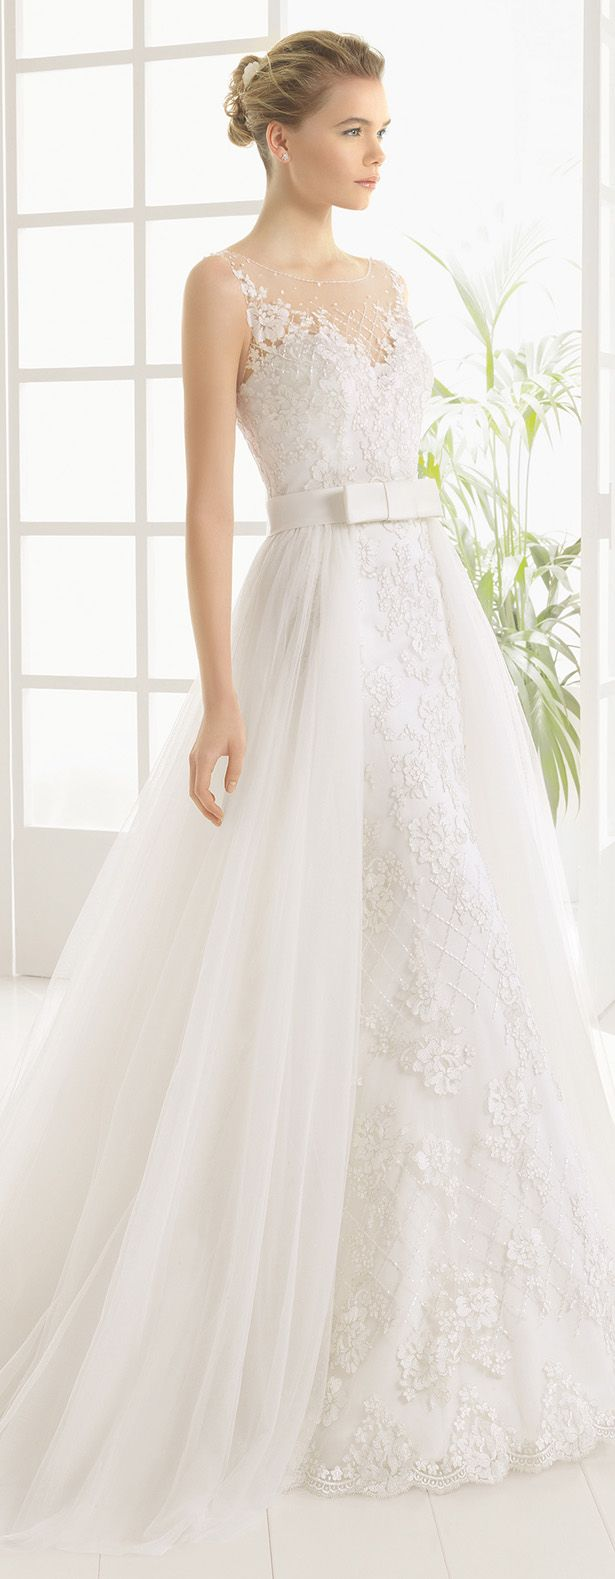 11 best brautkleid images on pinterest wedding frocks for Barcelona wedding dress designer